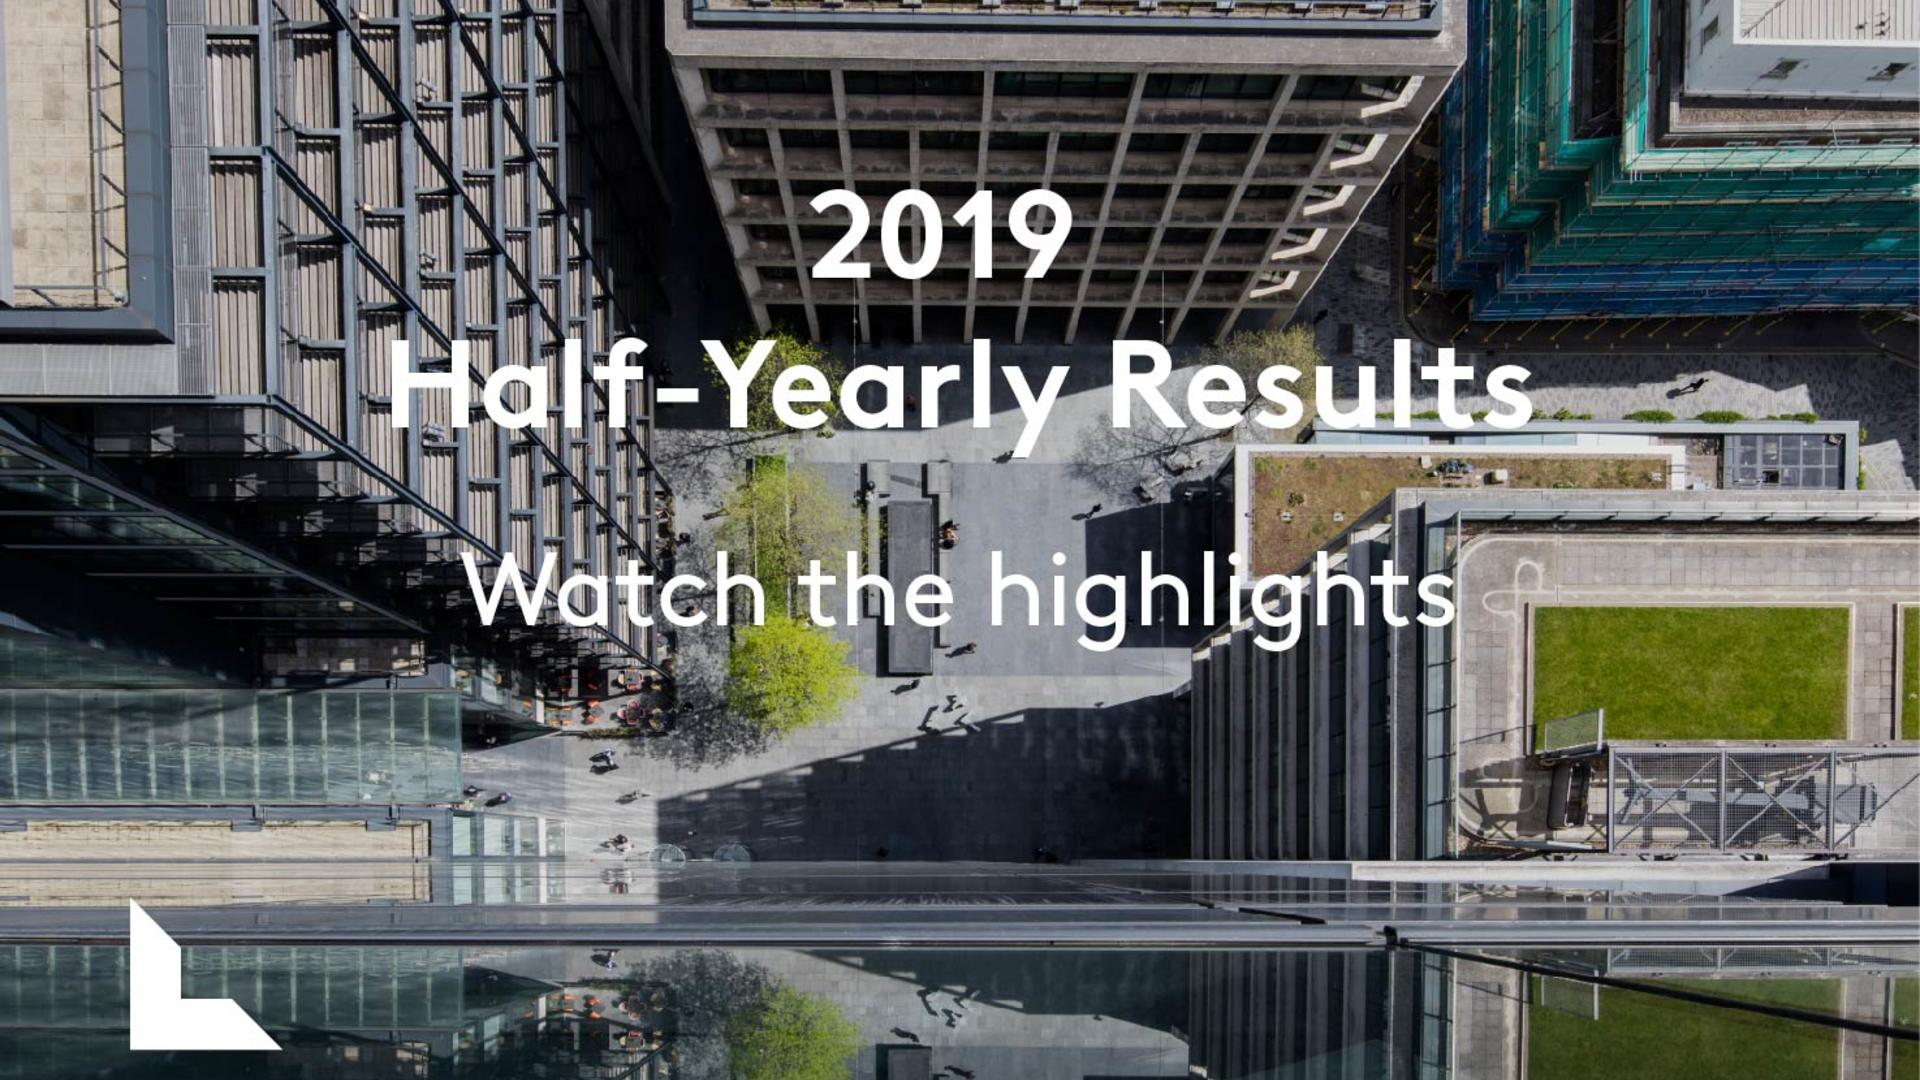 2019 Half-yearly results